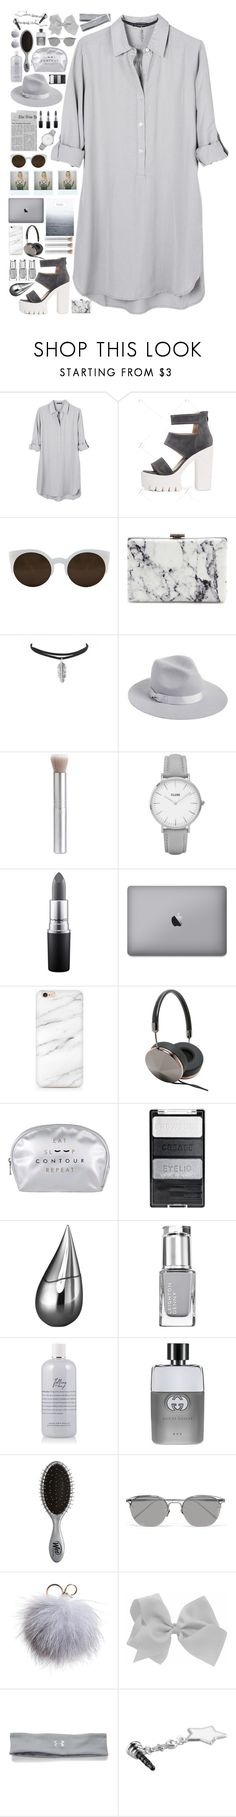 """The rule of freedom"" by timeless0trends ❤ liked on Polyvore featuring United by Blue, RetroSuperFuture, Balenciaga, Lack of Color, Topshop, MAC Cosmetics, Frends, La Prairie, Gucci and The Wet Brush"